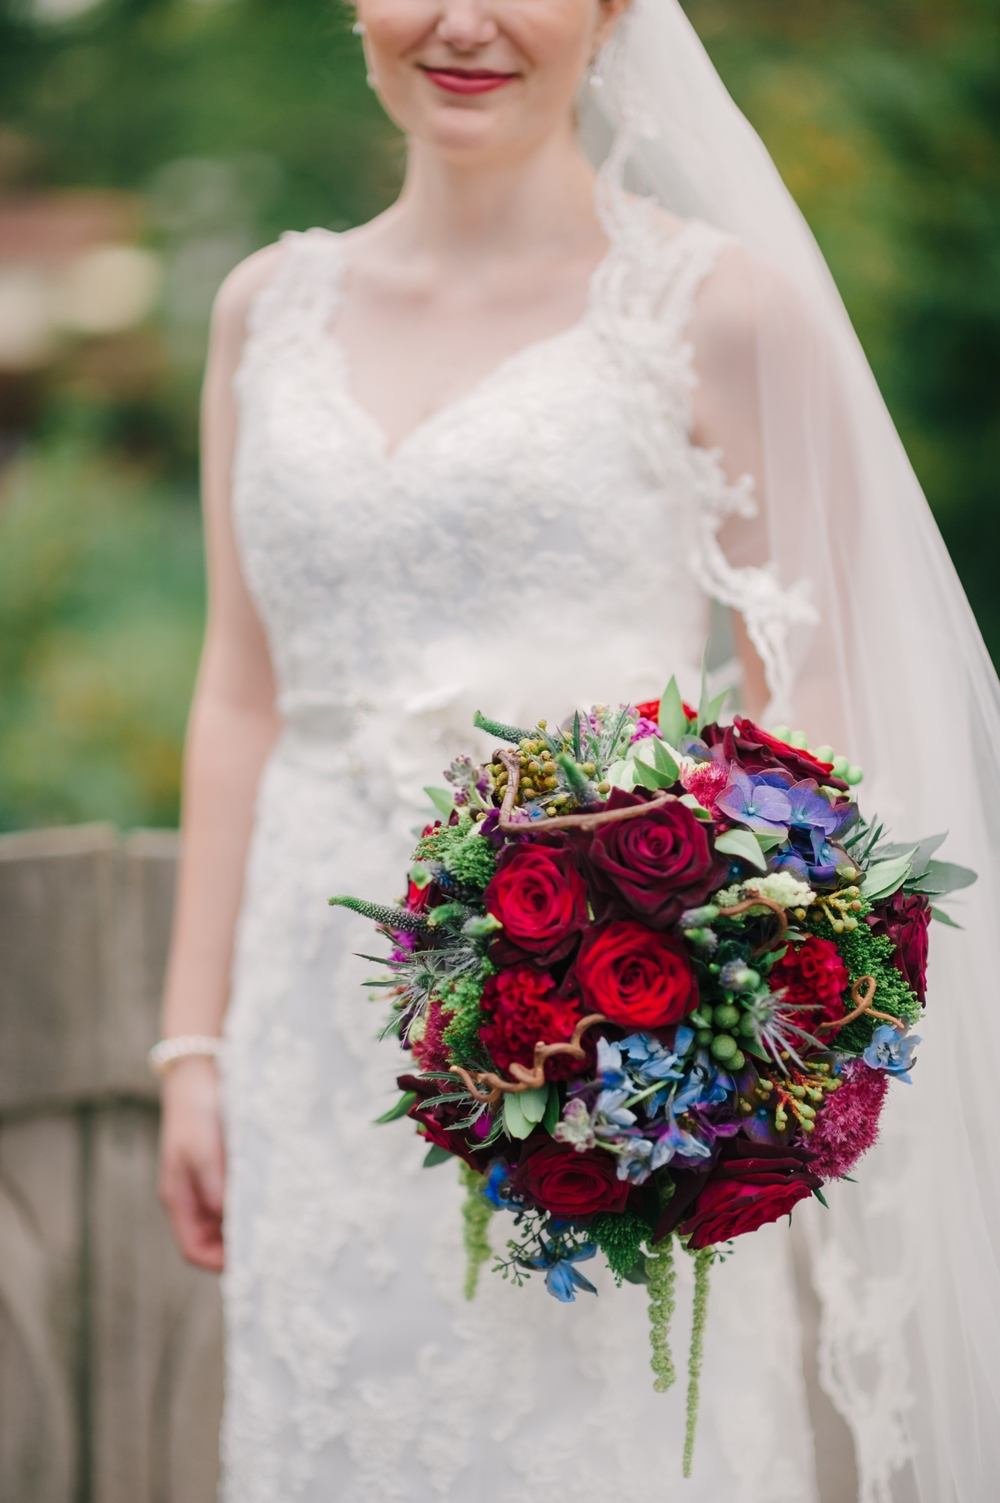 Old Courthouse Wedding in Dayton, Ohio by Andrea Belle Studios